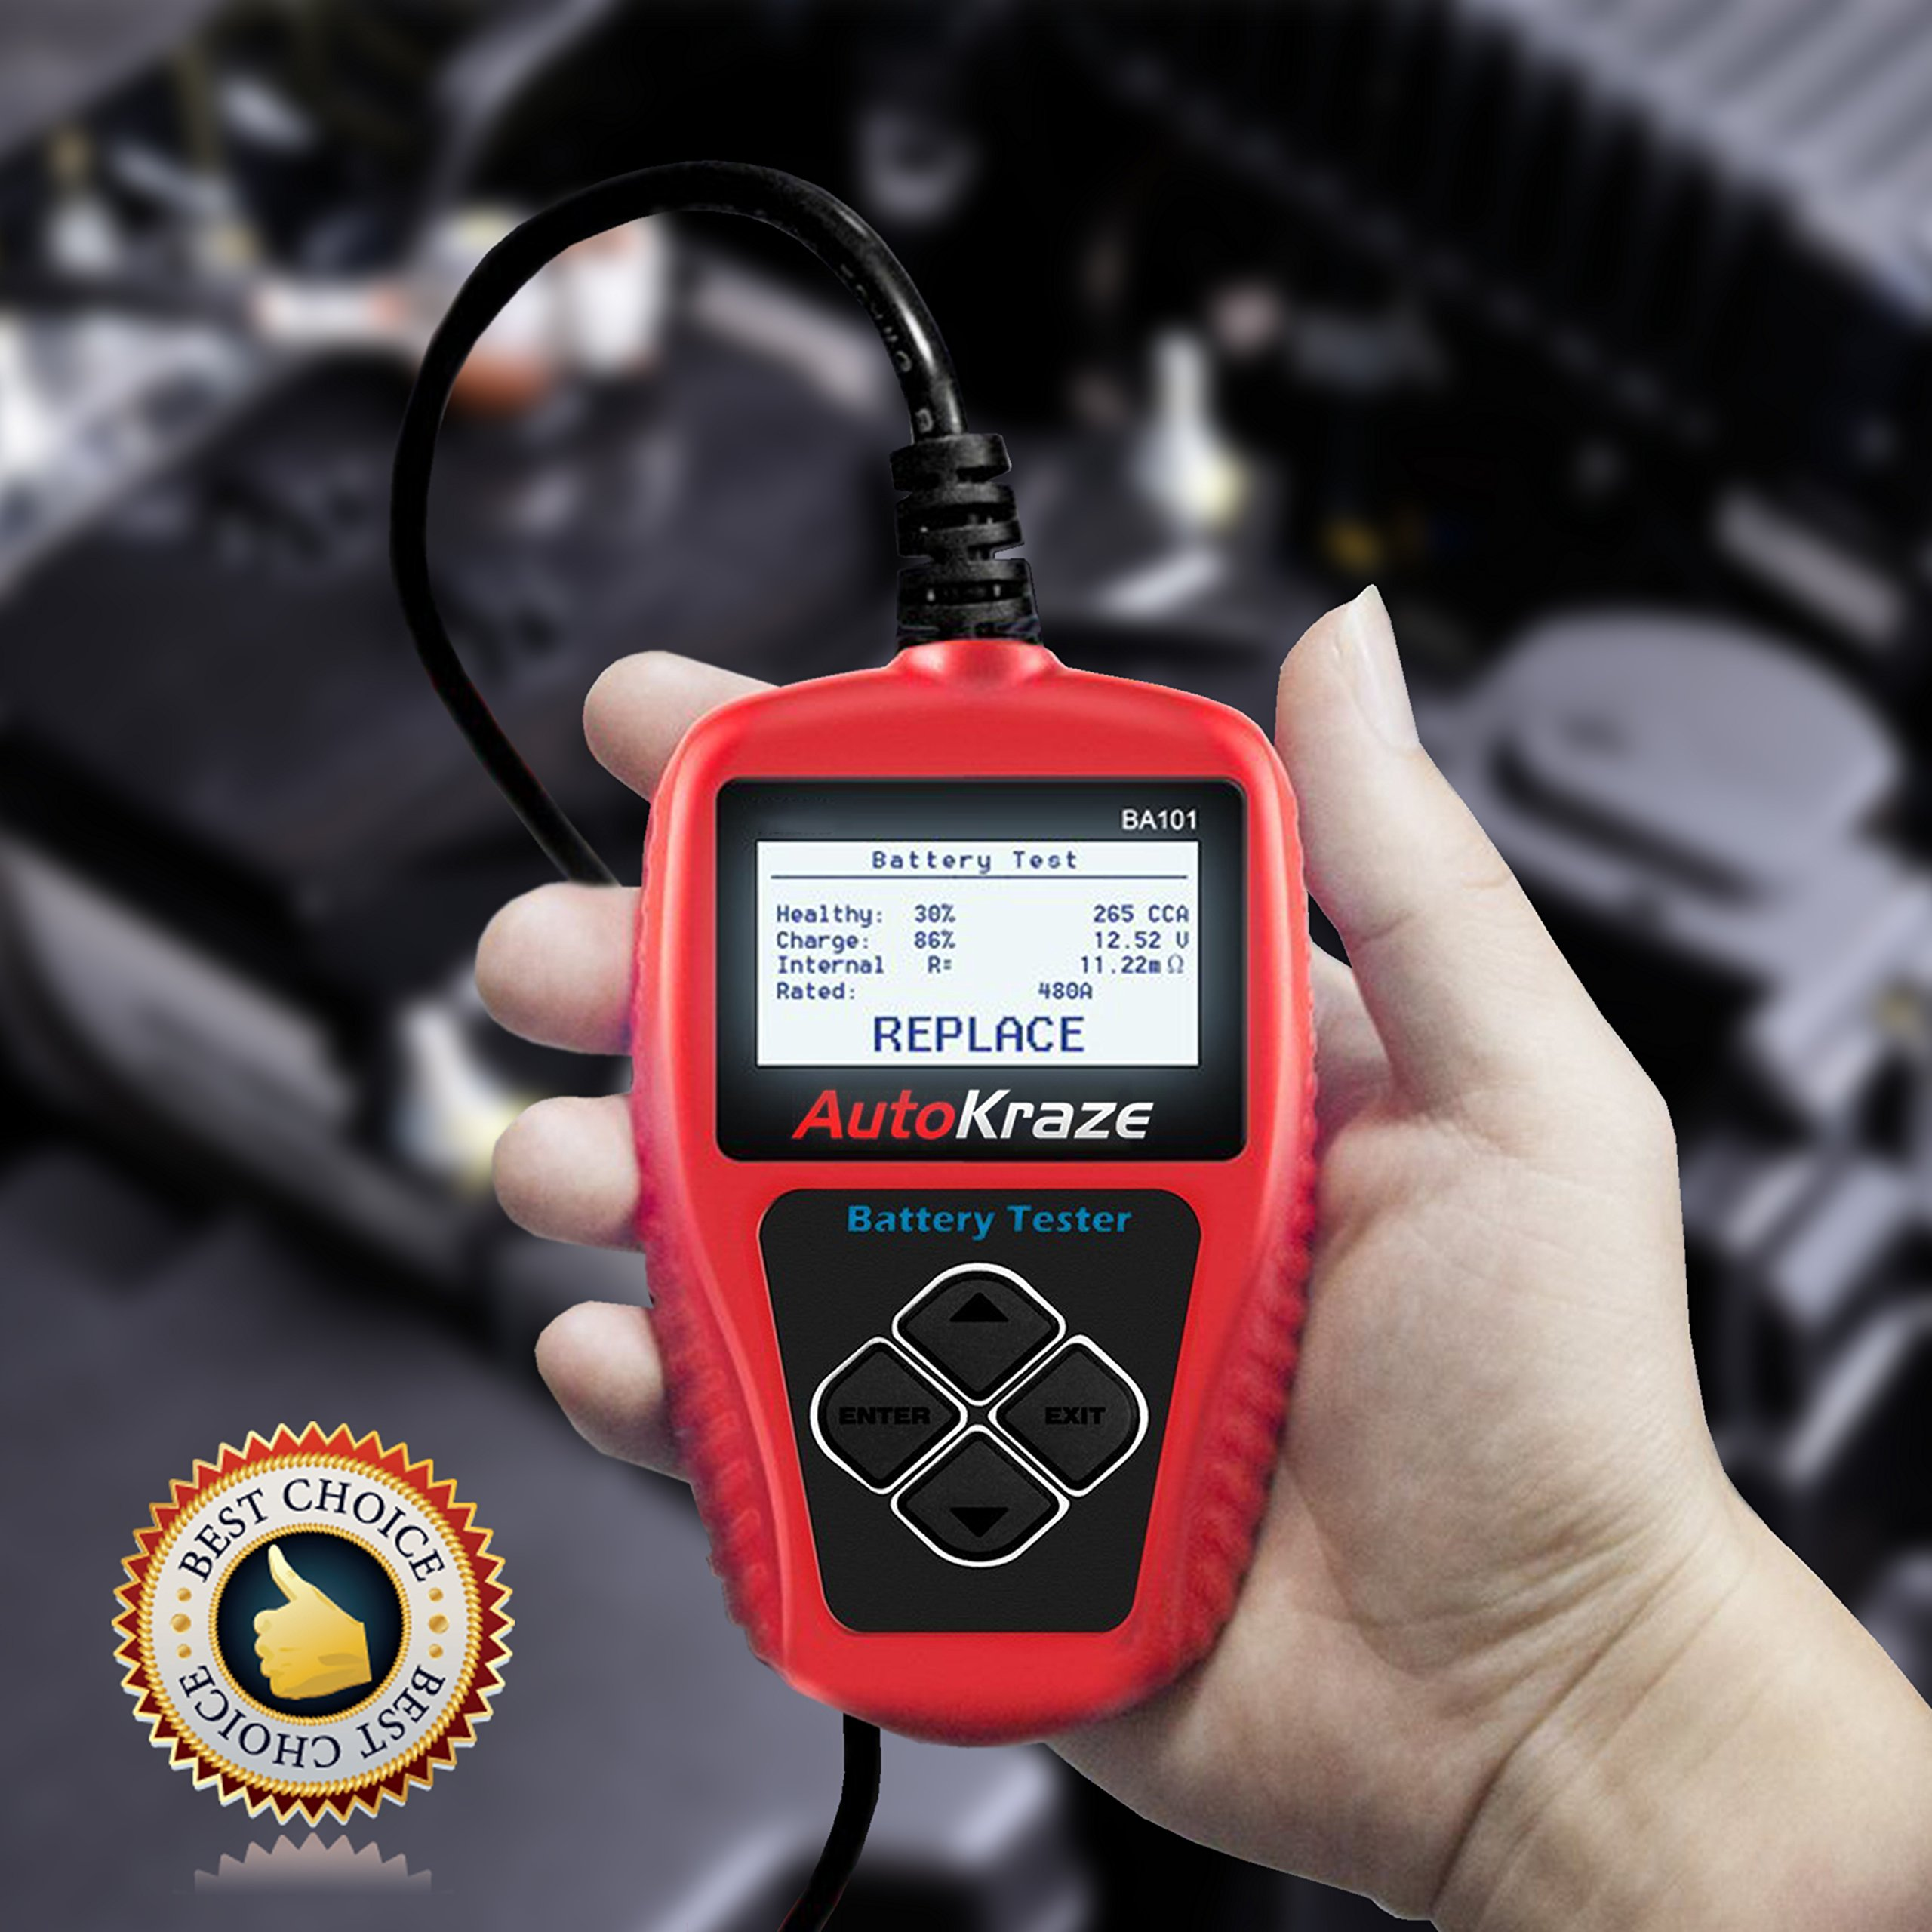 AutoKraze BA101 Automotive Battery Load Tester 12V 100-2000 CCA Bad Cell Test Analyzer Tool Directly Test Car, Boat, and Motorcycle Battery Status Portable, Digital and Rechargeable Battery Tester by AutoKraze (Image #7)